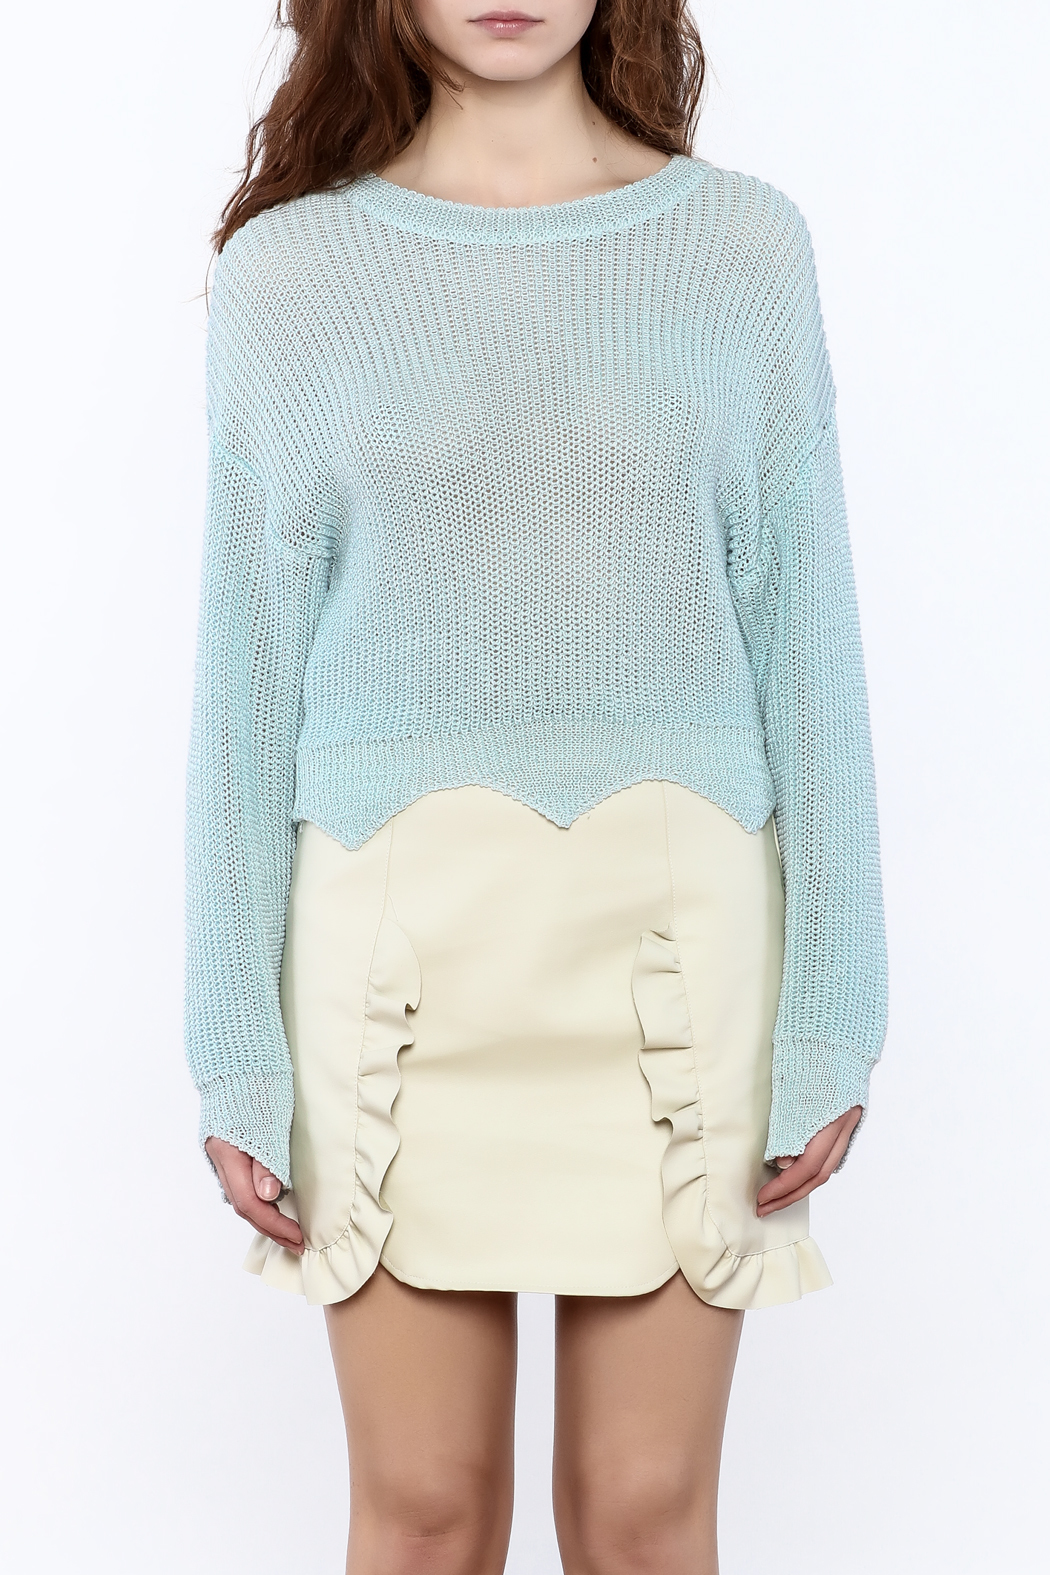 Pinkyotto Edgy Cropped Light Sweater - Side Cropped Image